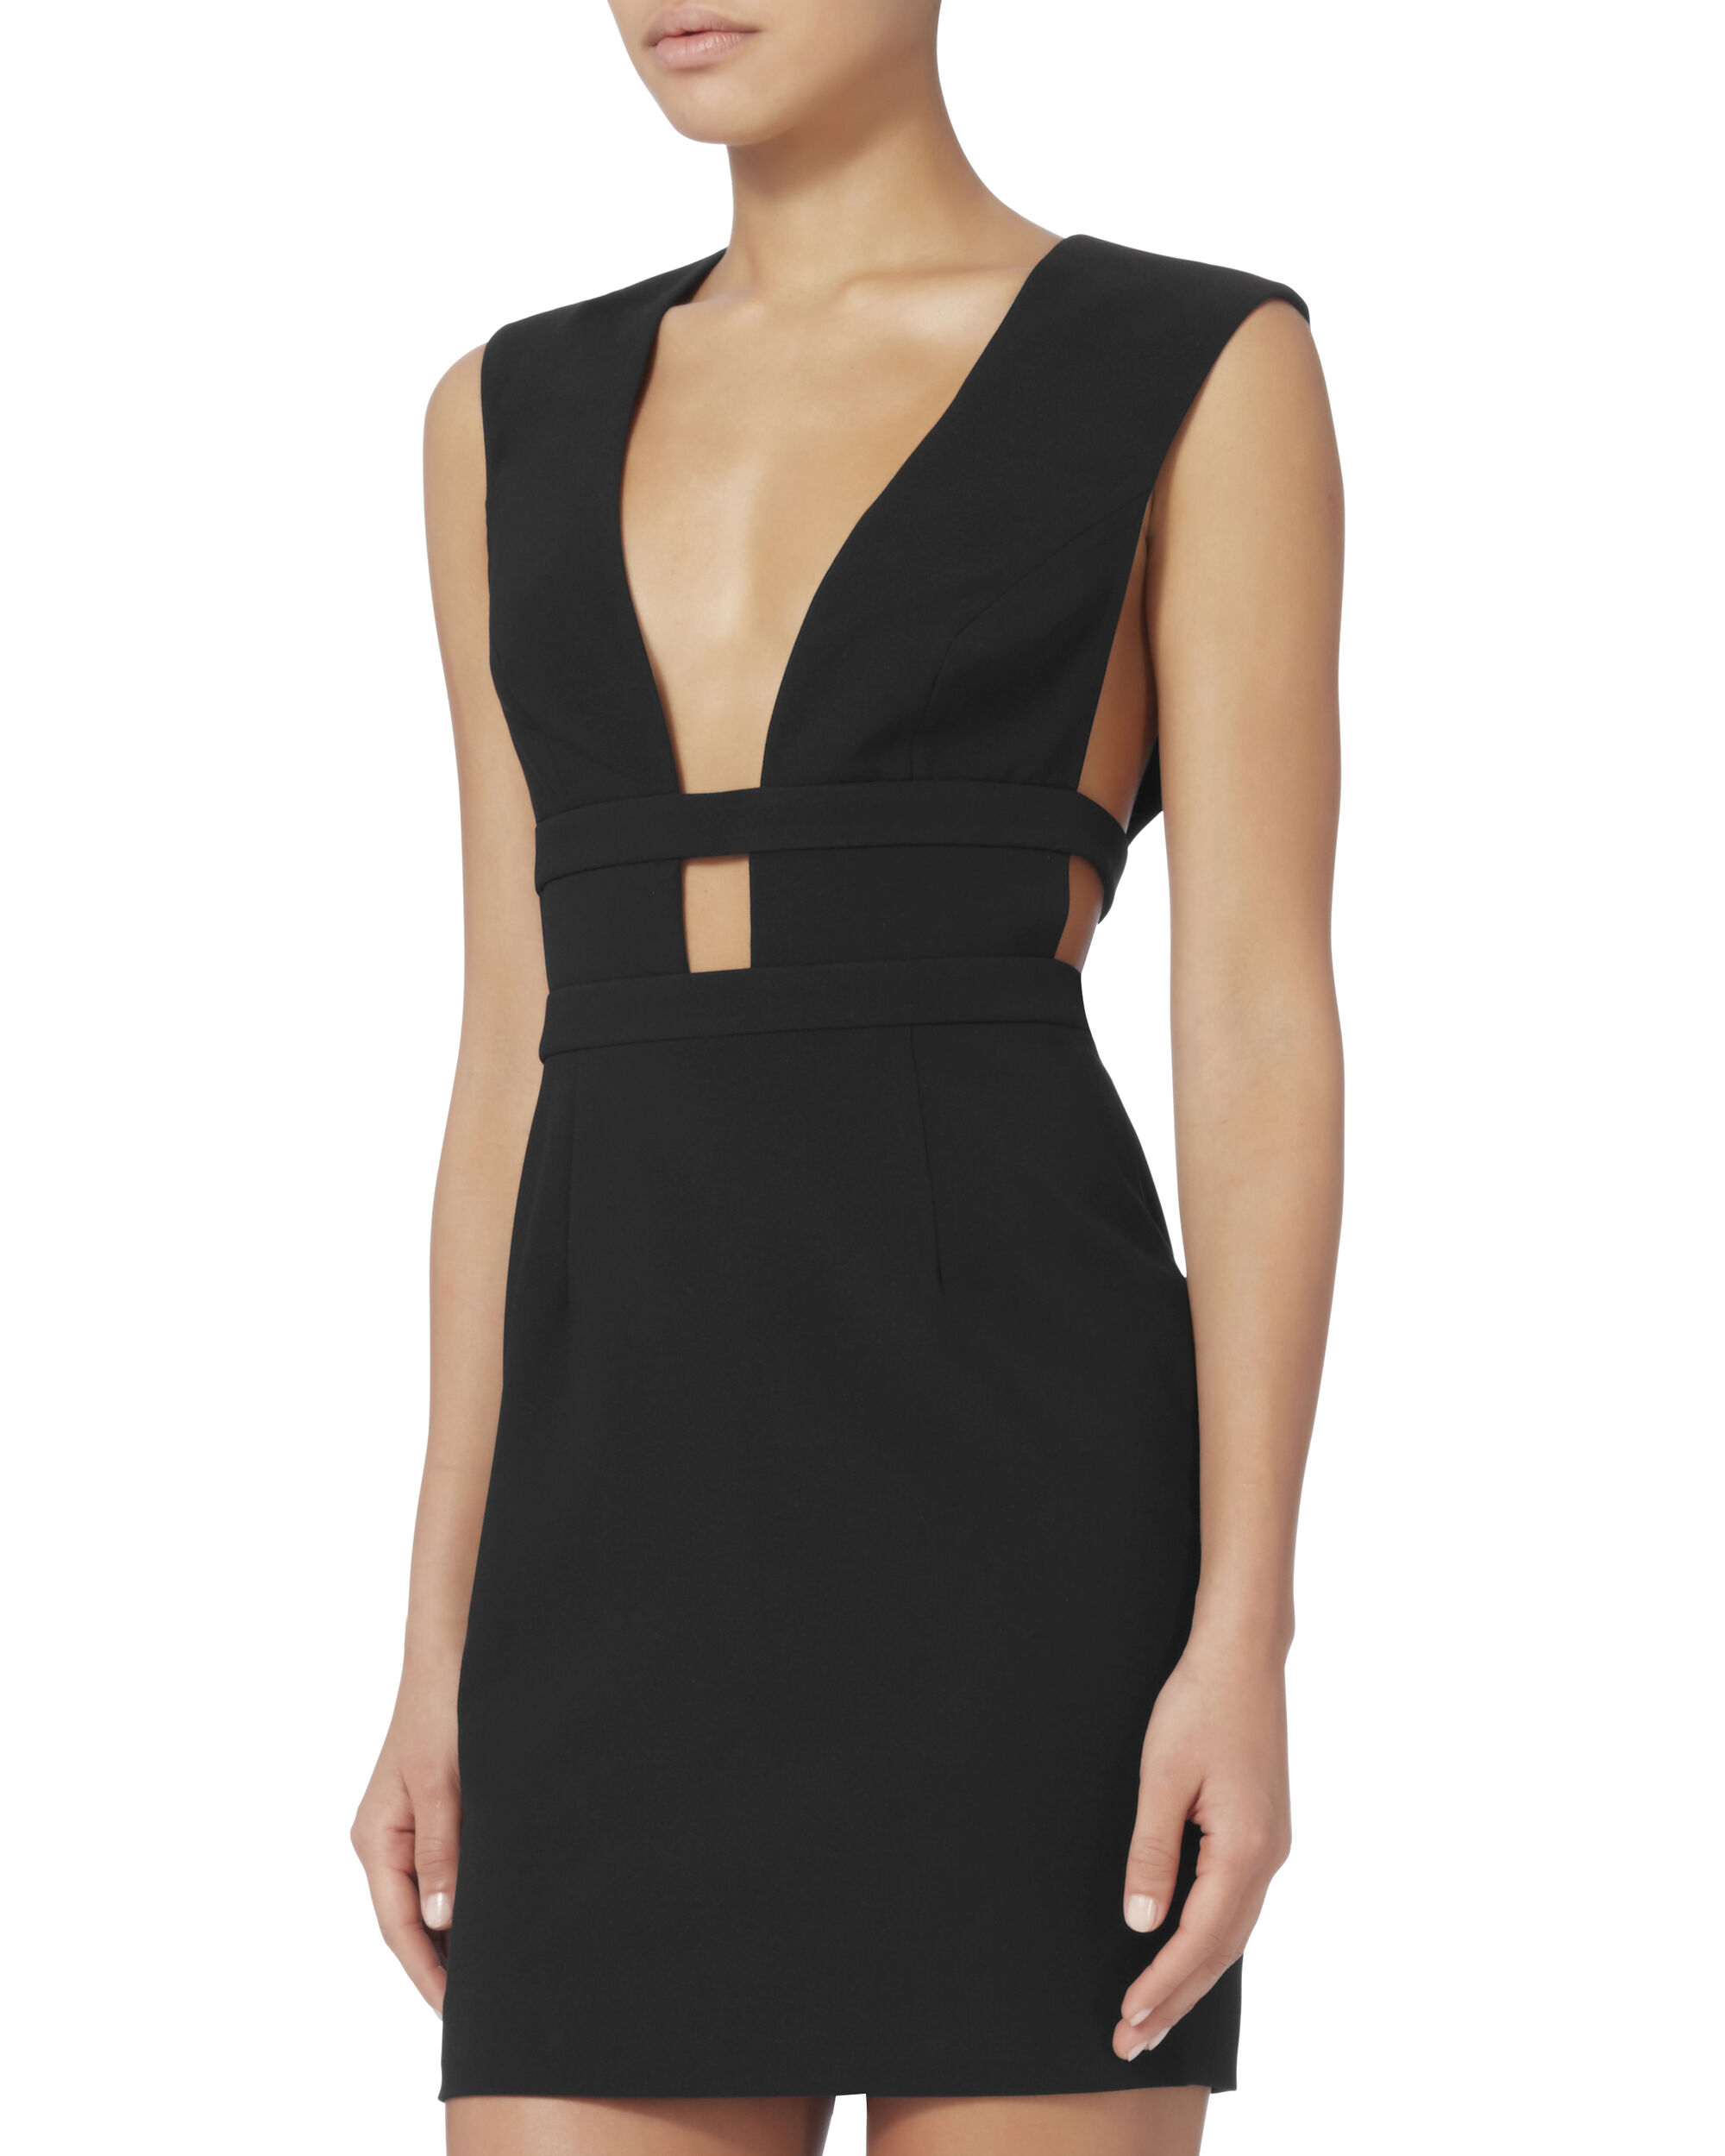 Redding Black Deep-V Mini Dress, BLACK, hi-res